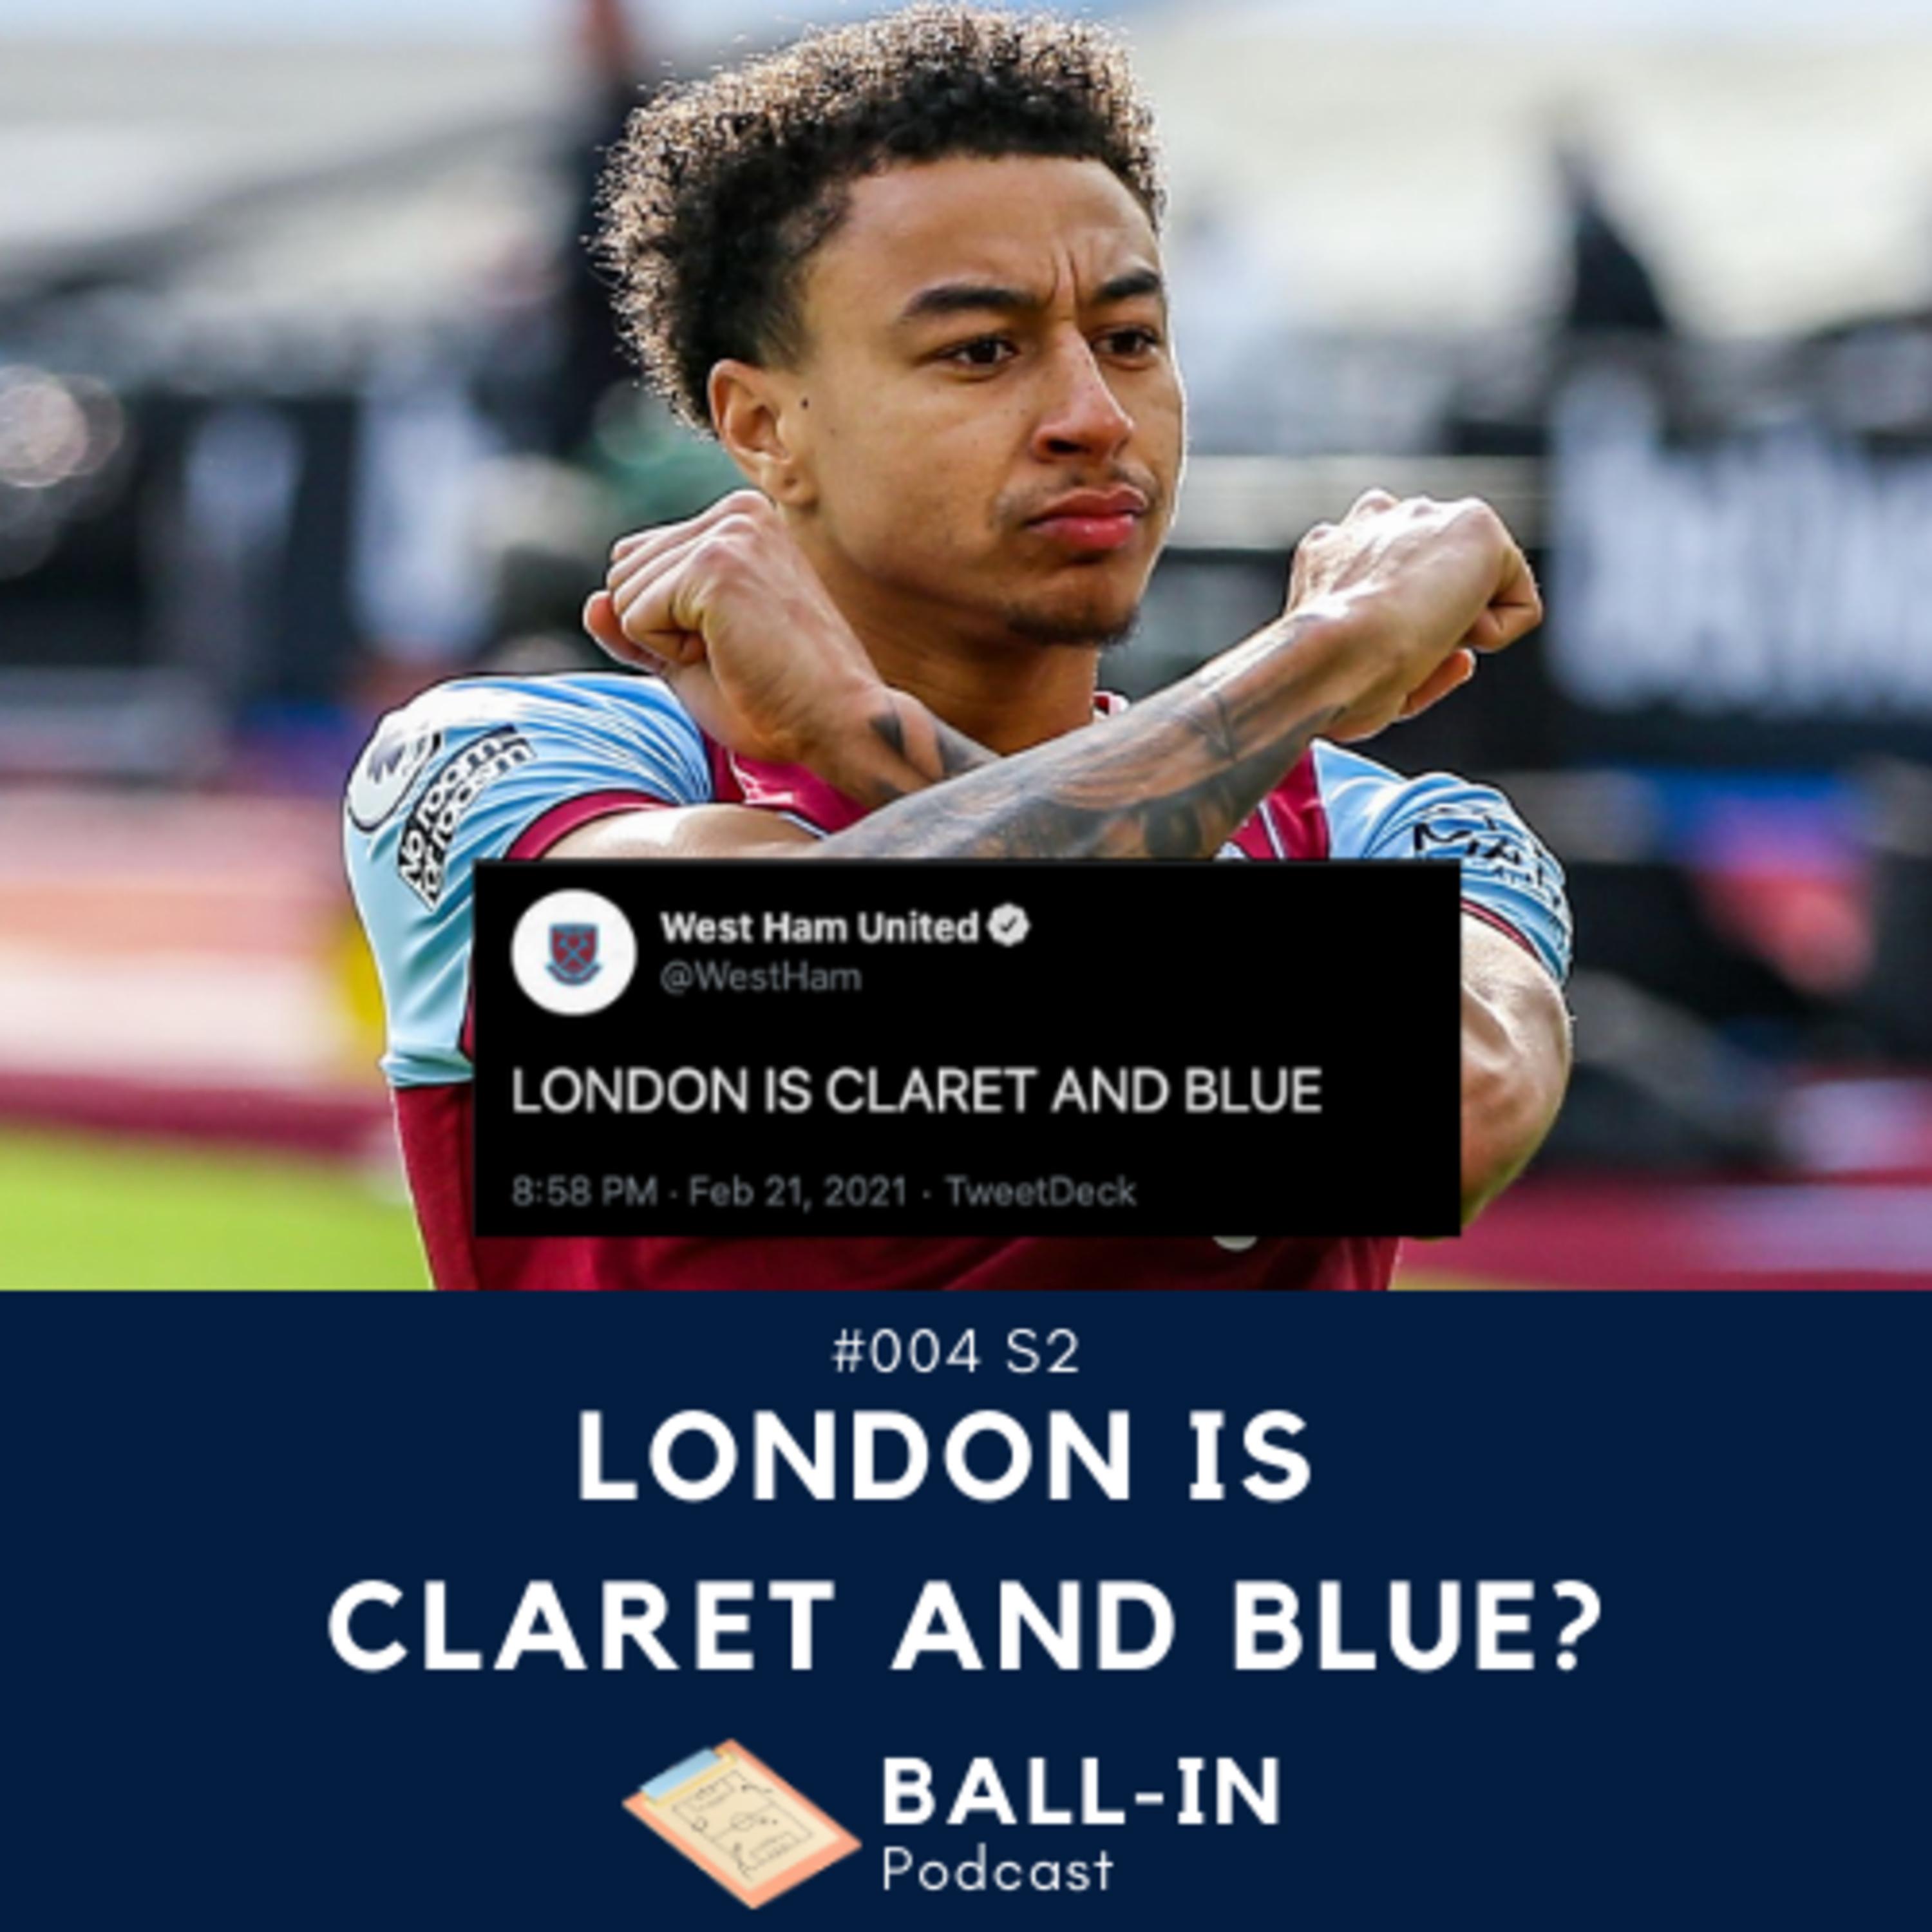 #004 S2: London Is Claret And Blue?